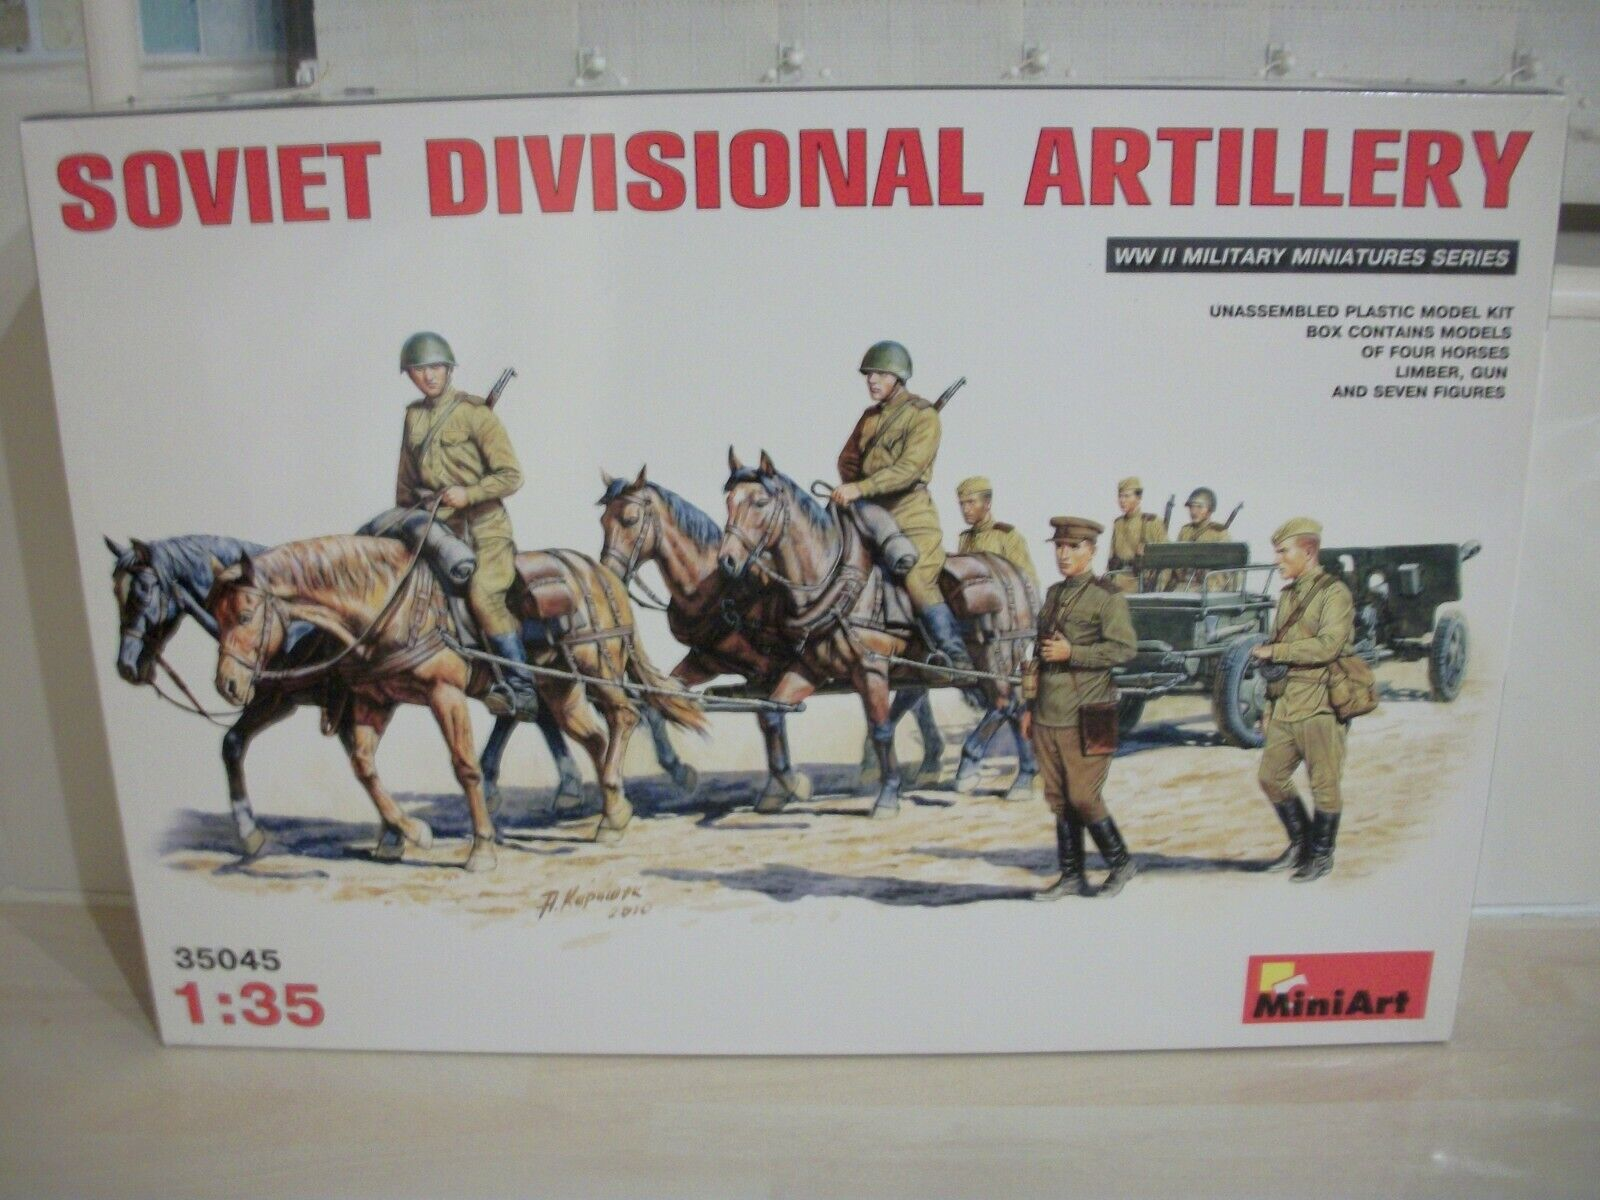 MiniArt 35045 1 35 Scale Soviet Divisional Artillery Model Kit